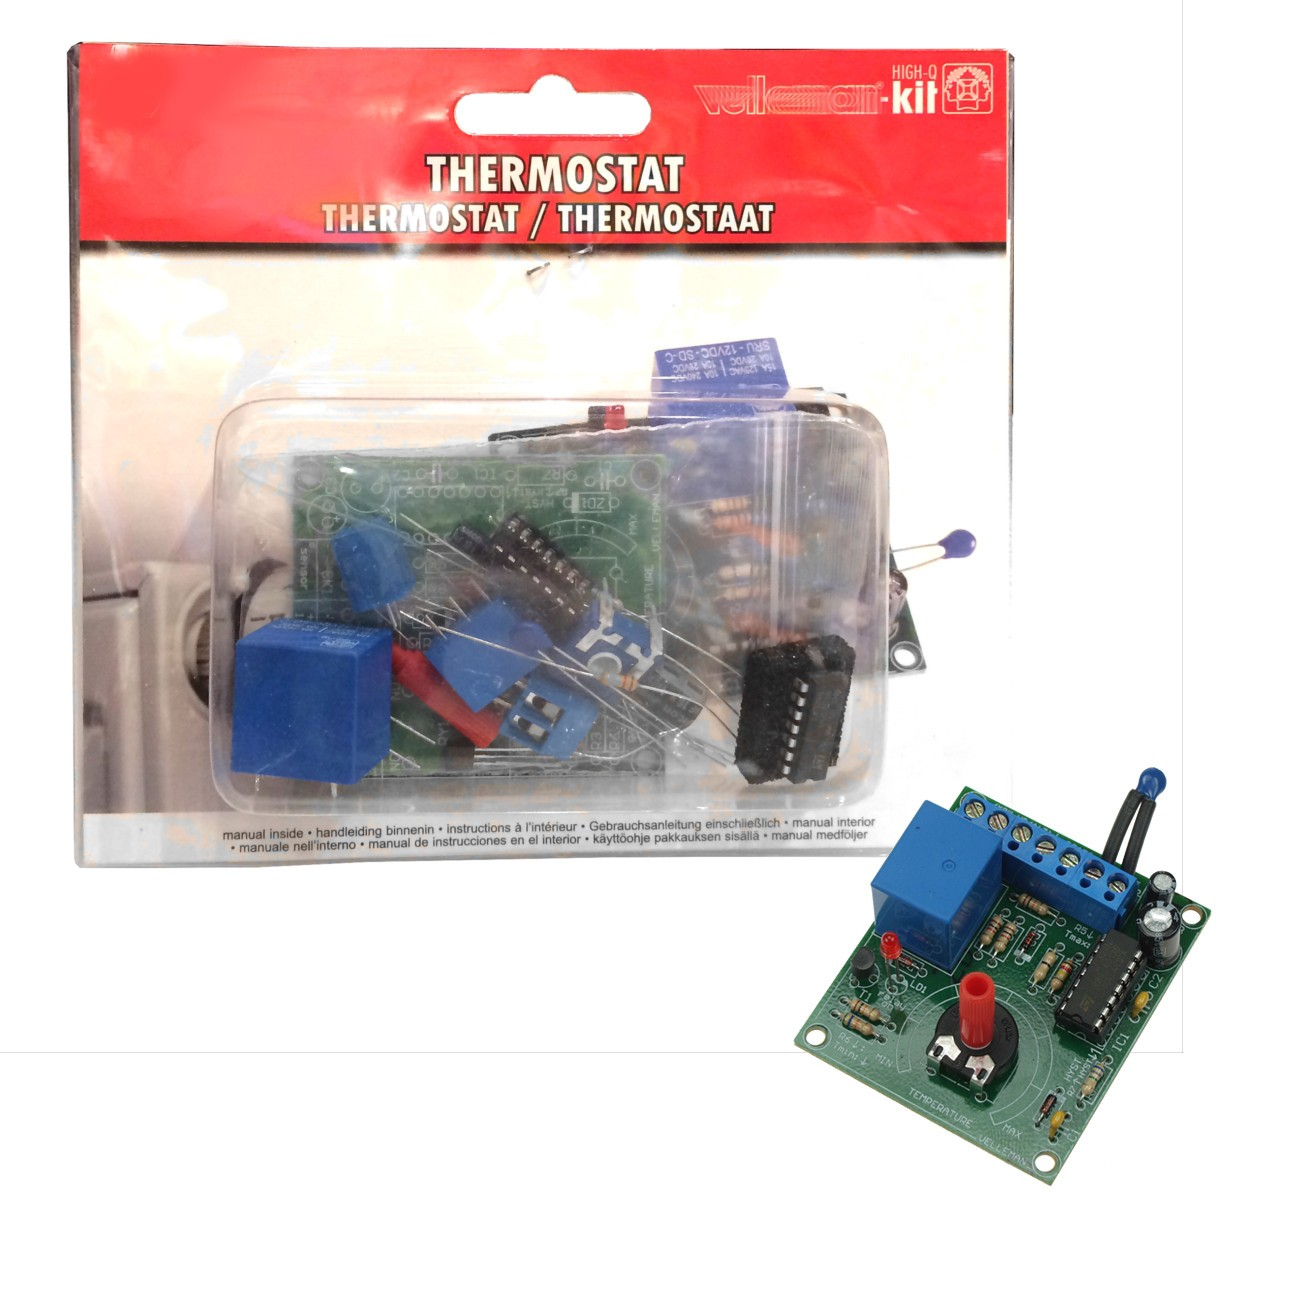 1049 Thermostat Soldering Kit For Hobby Electronics Projects Electronic Kits Tinkersphere